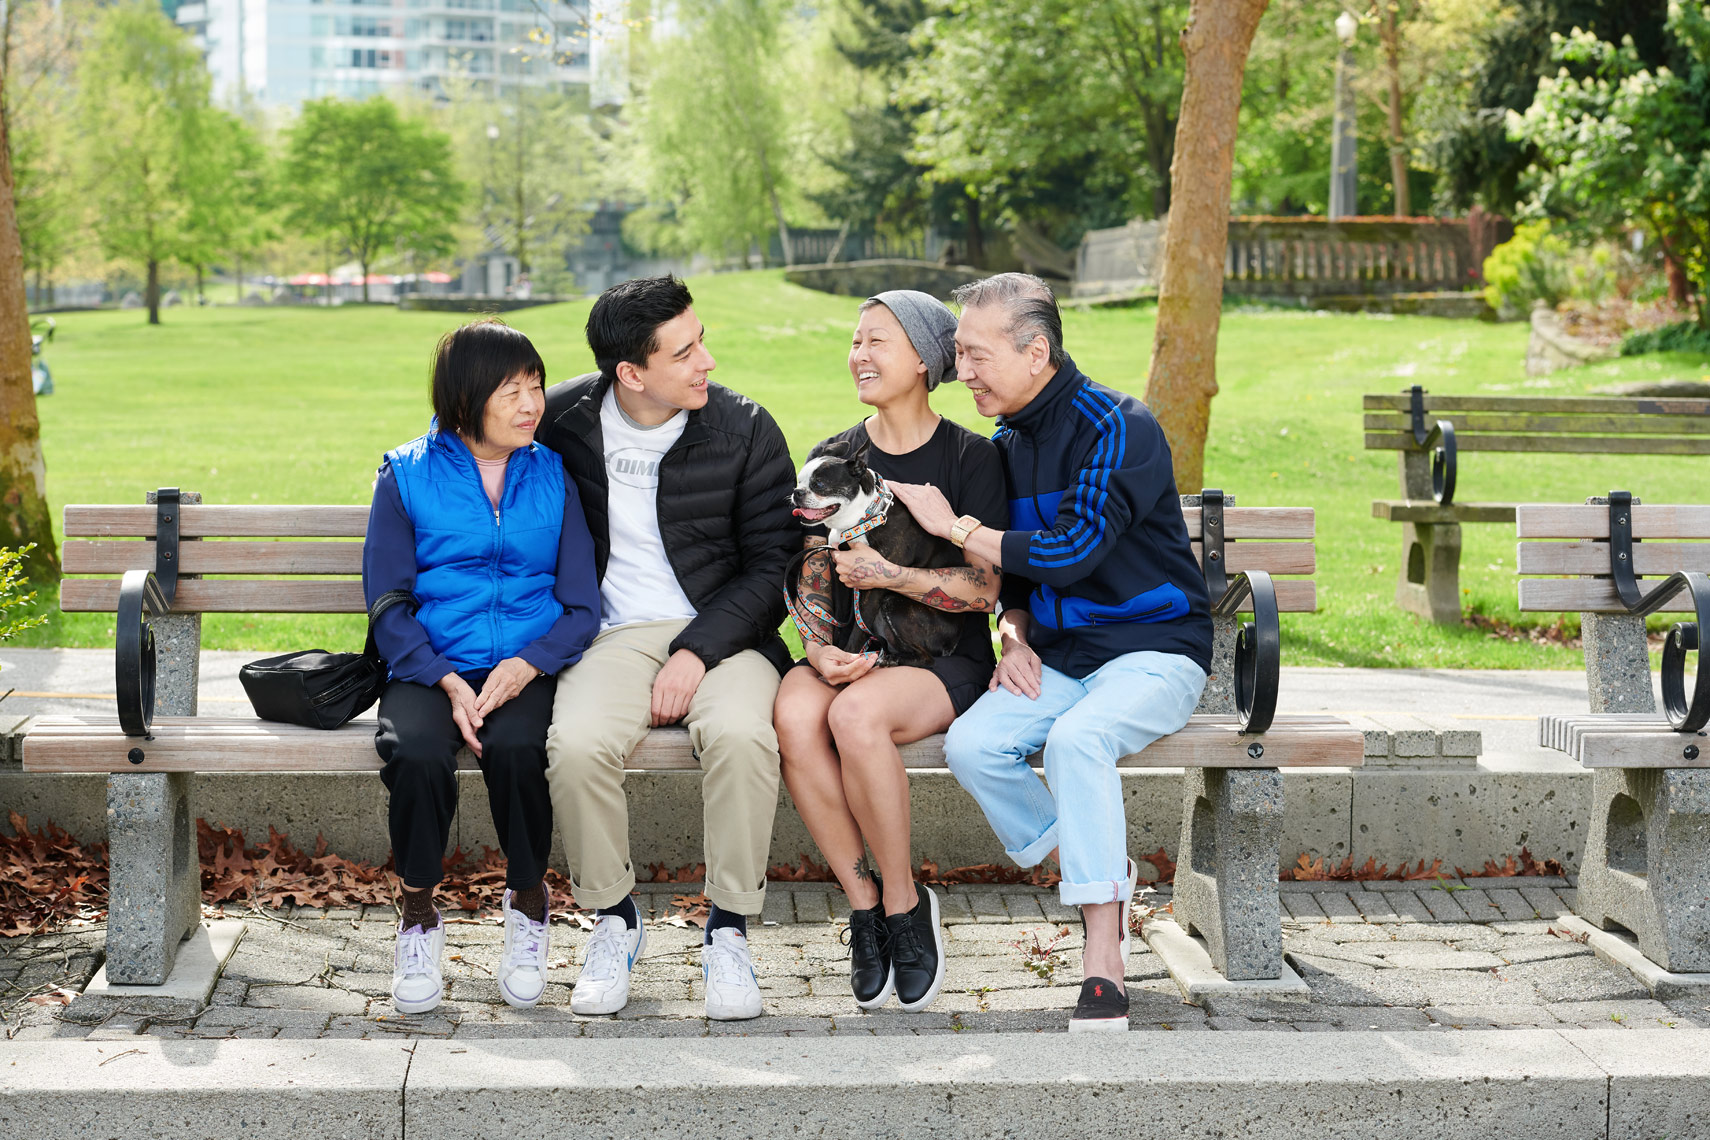 2018-Vancouver-Lifestyle-Photographer-ErichSaide-Advertising-RCPets-Summer-Family-FrenchBulldog